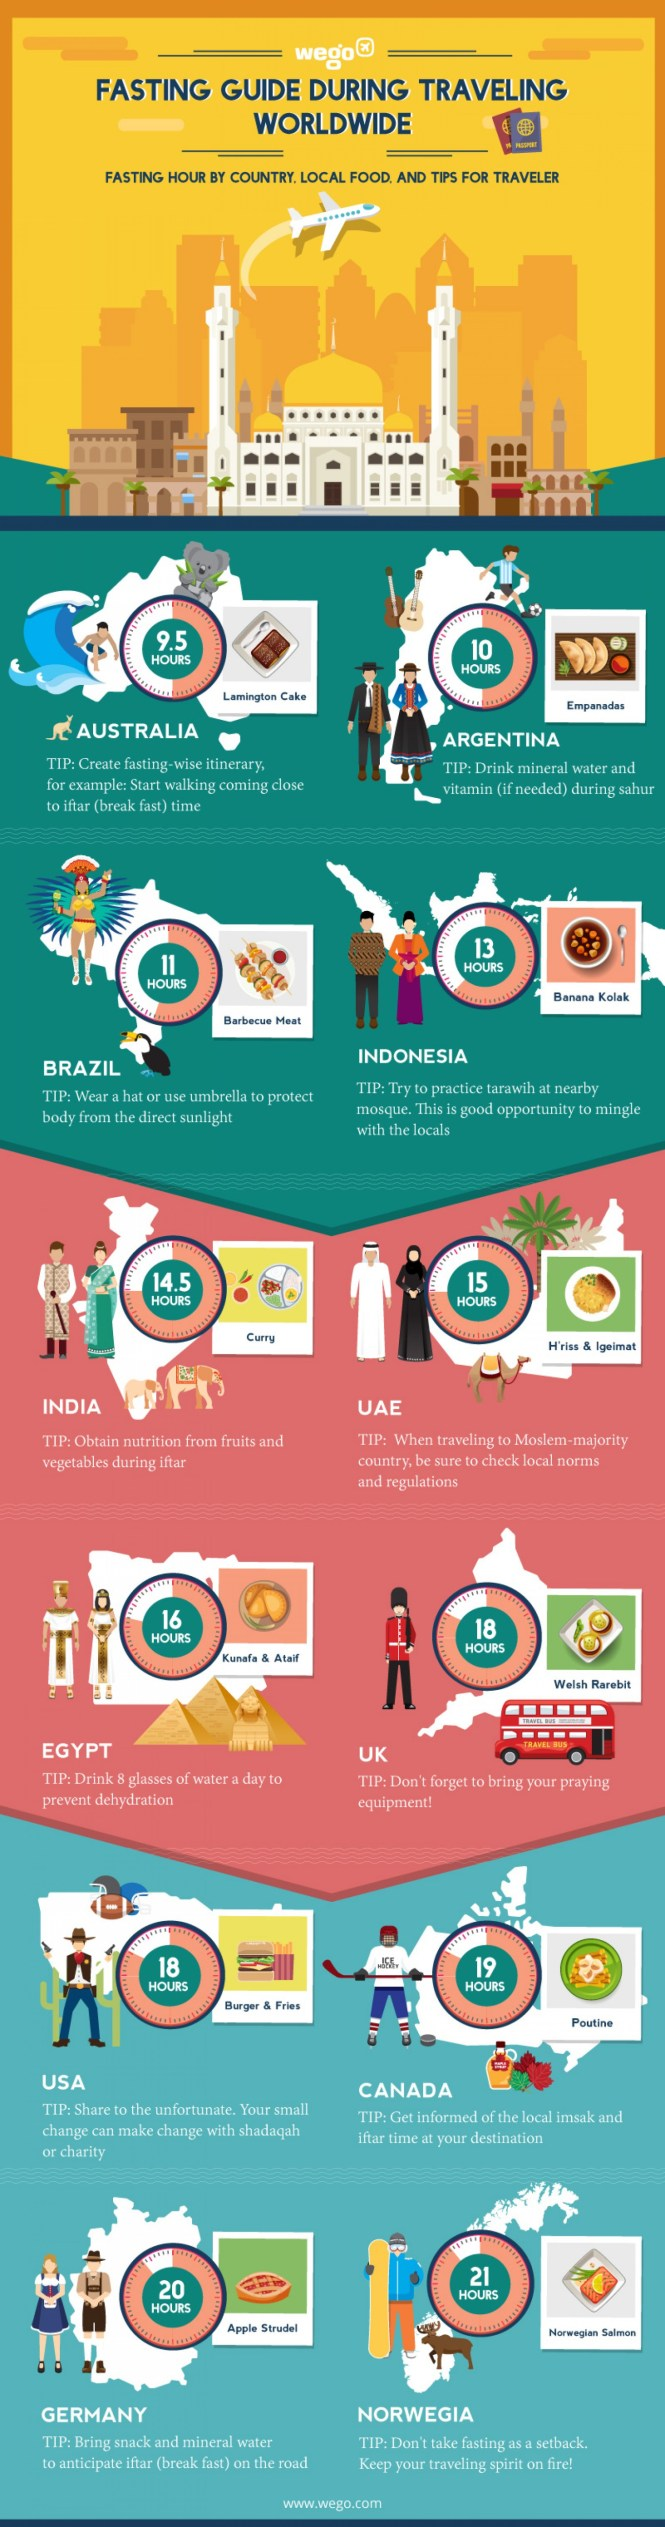 Fasting Guide During Traveling Worldwide